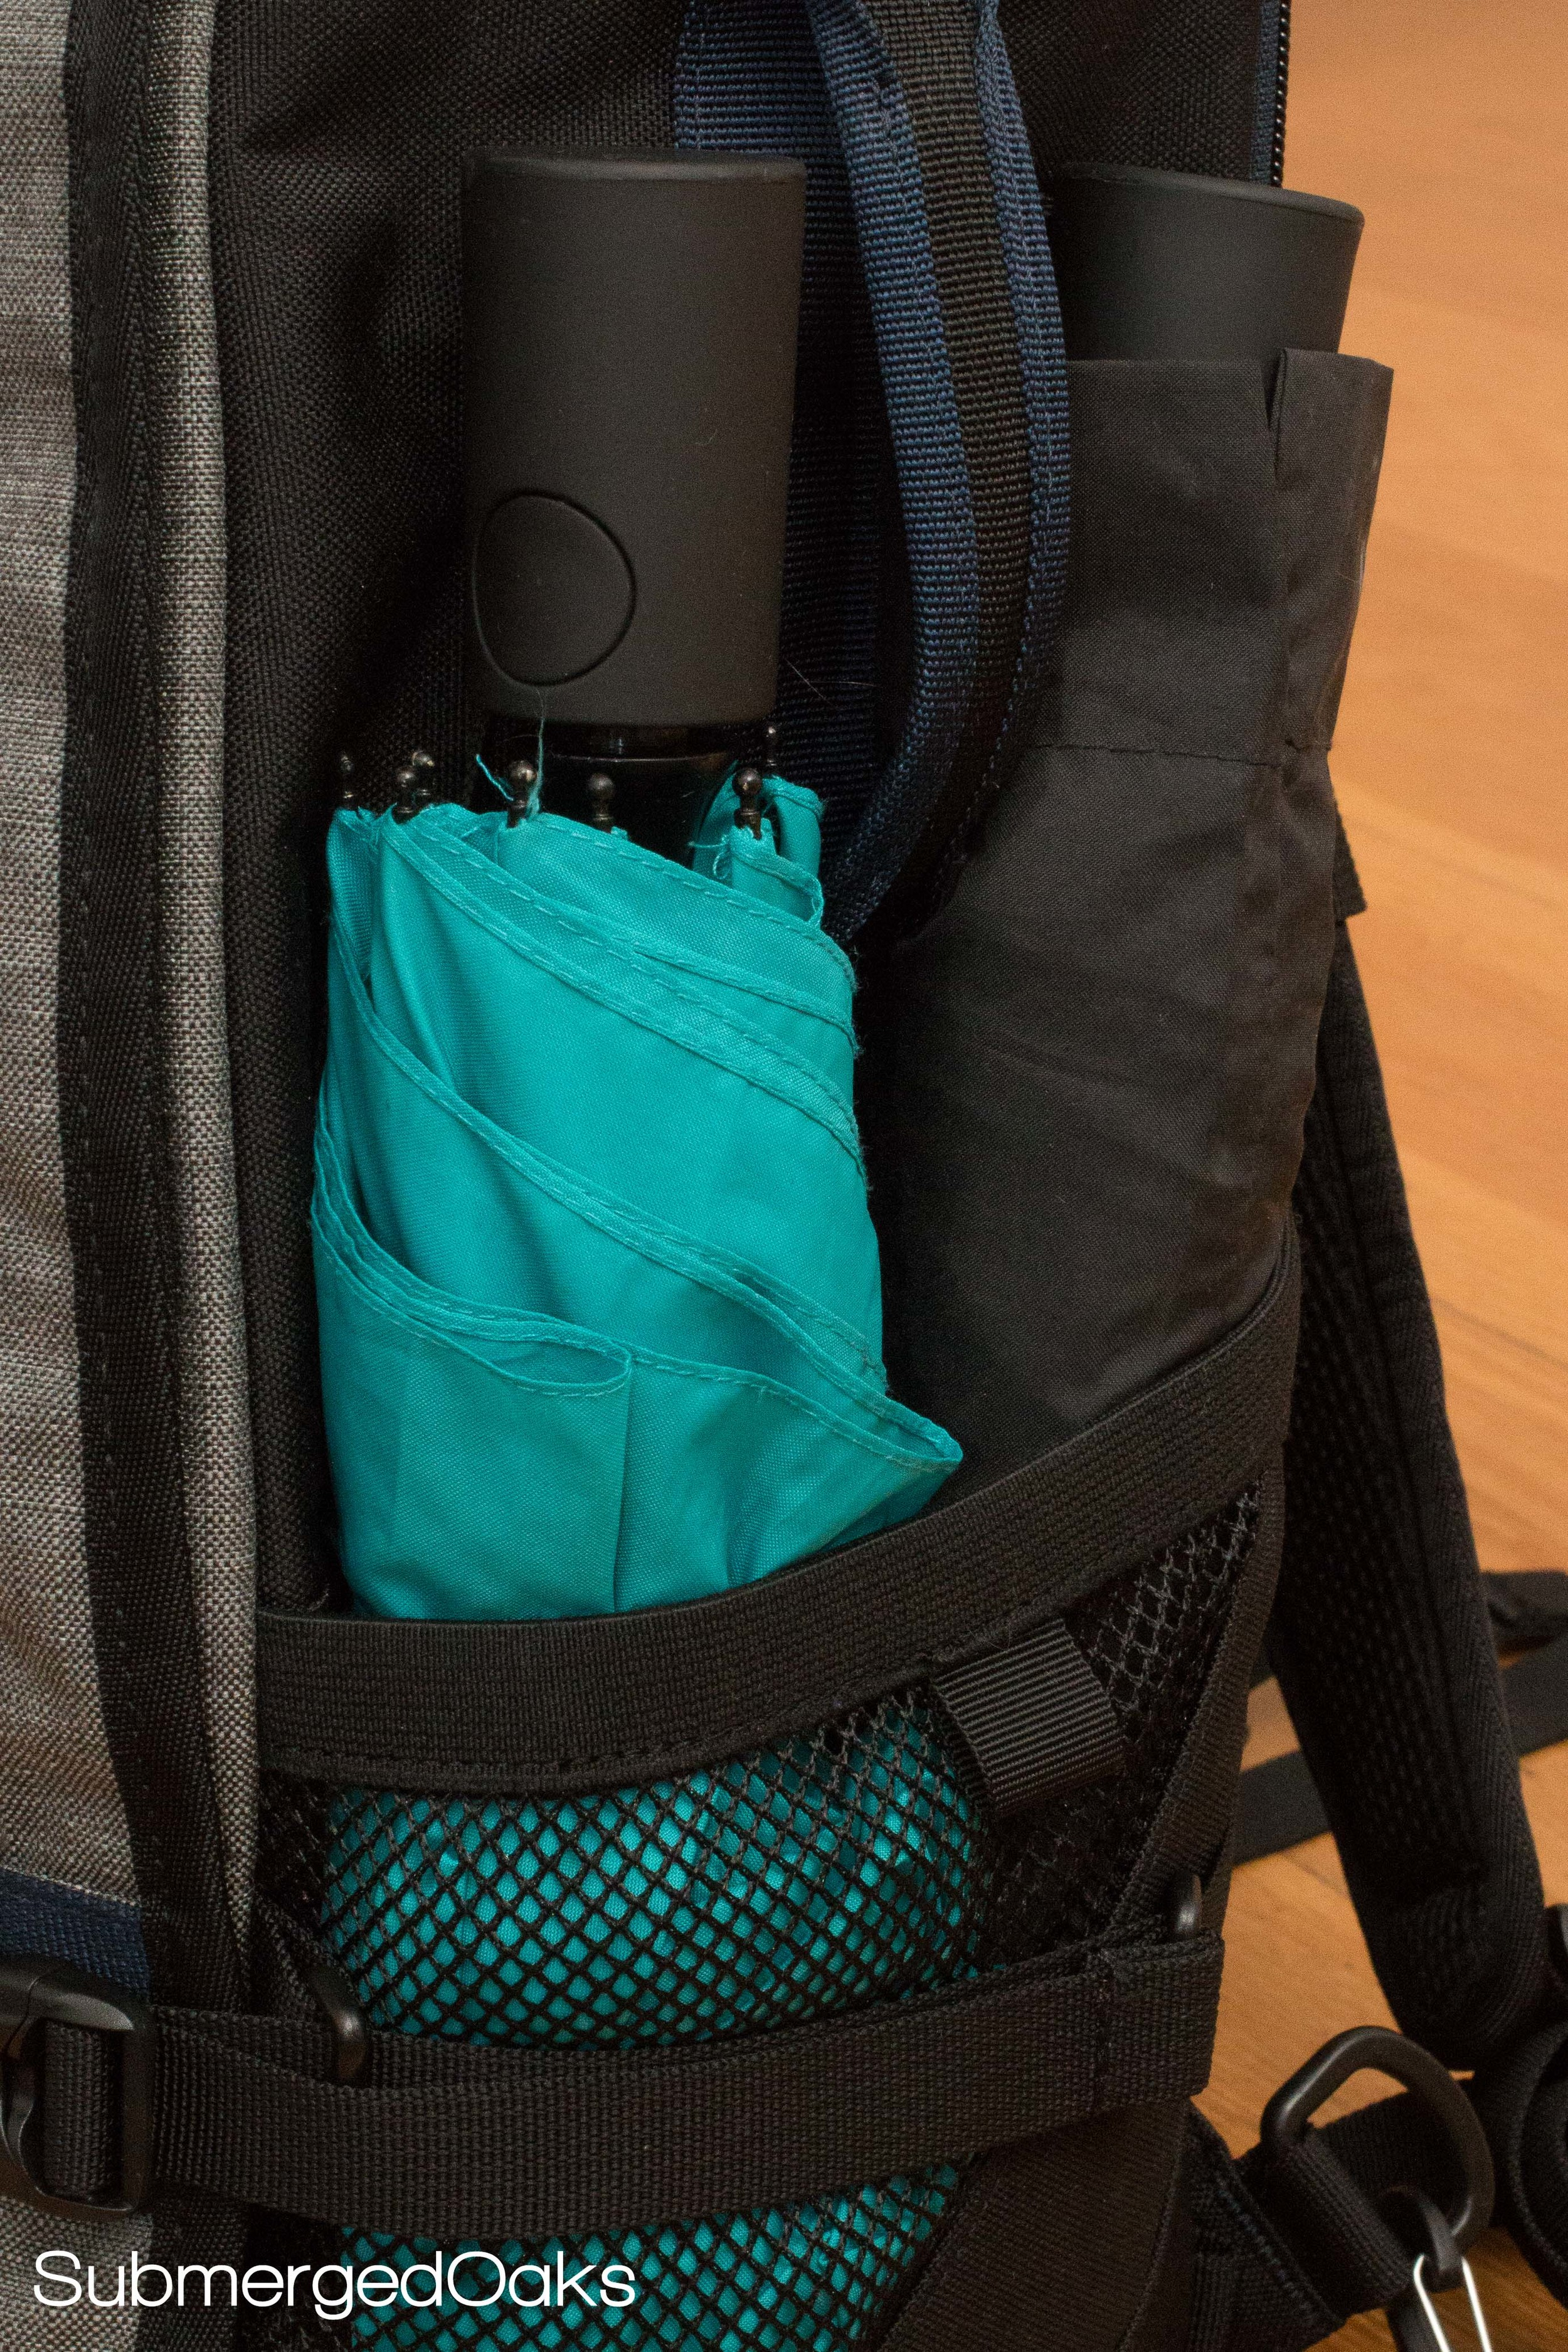 Two umbrellas fit in one of the outer mesh pockets